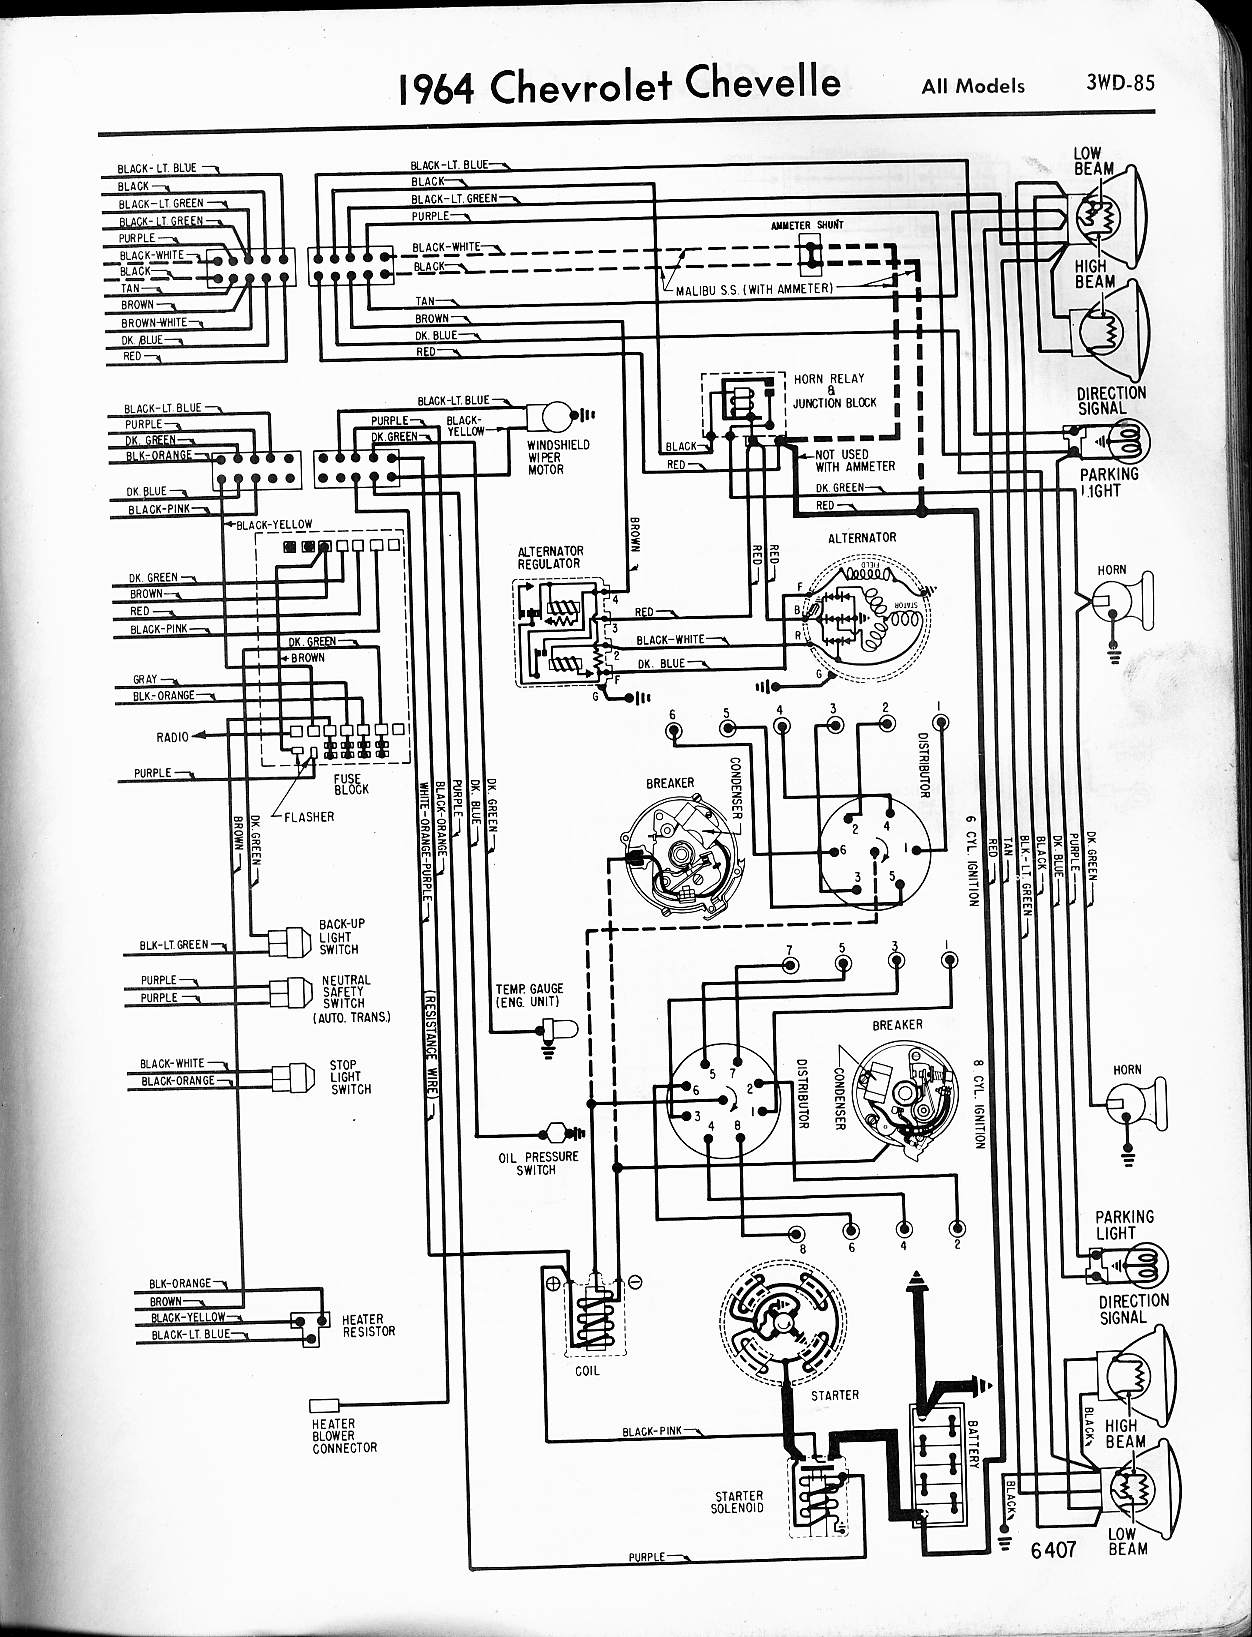 MWireChev64_3WD 085 57 65 chevy wiring diagrams 1966 impala wiring diagram at edmiracle.co